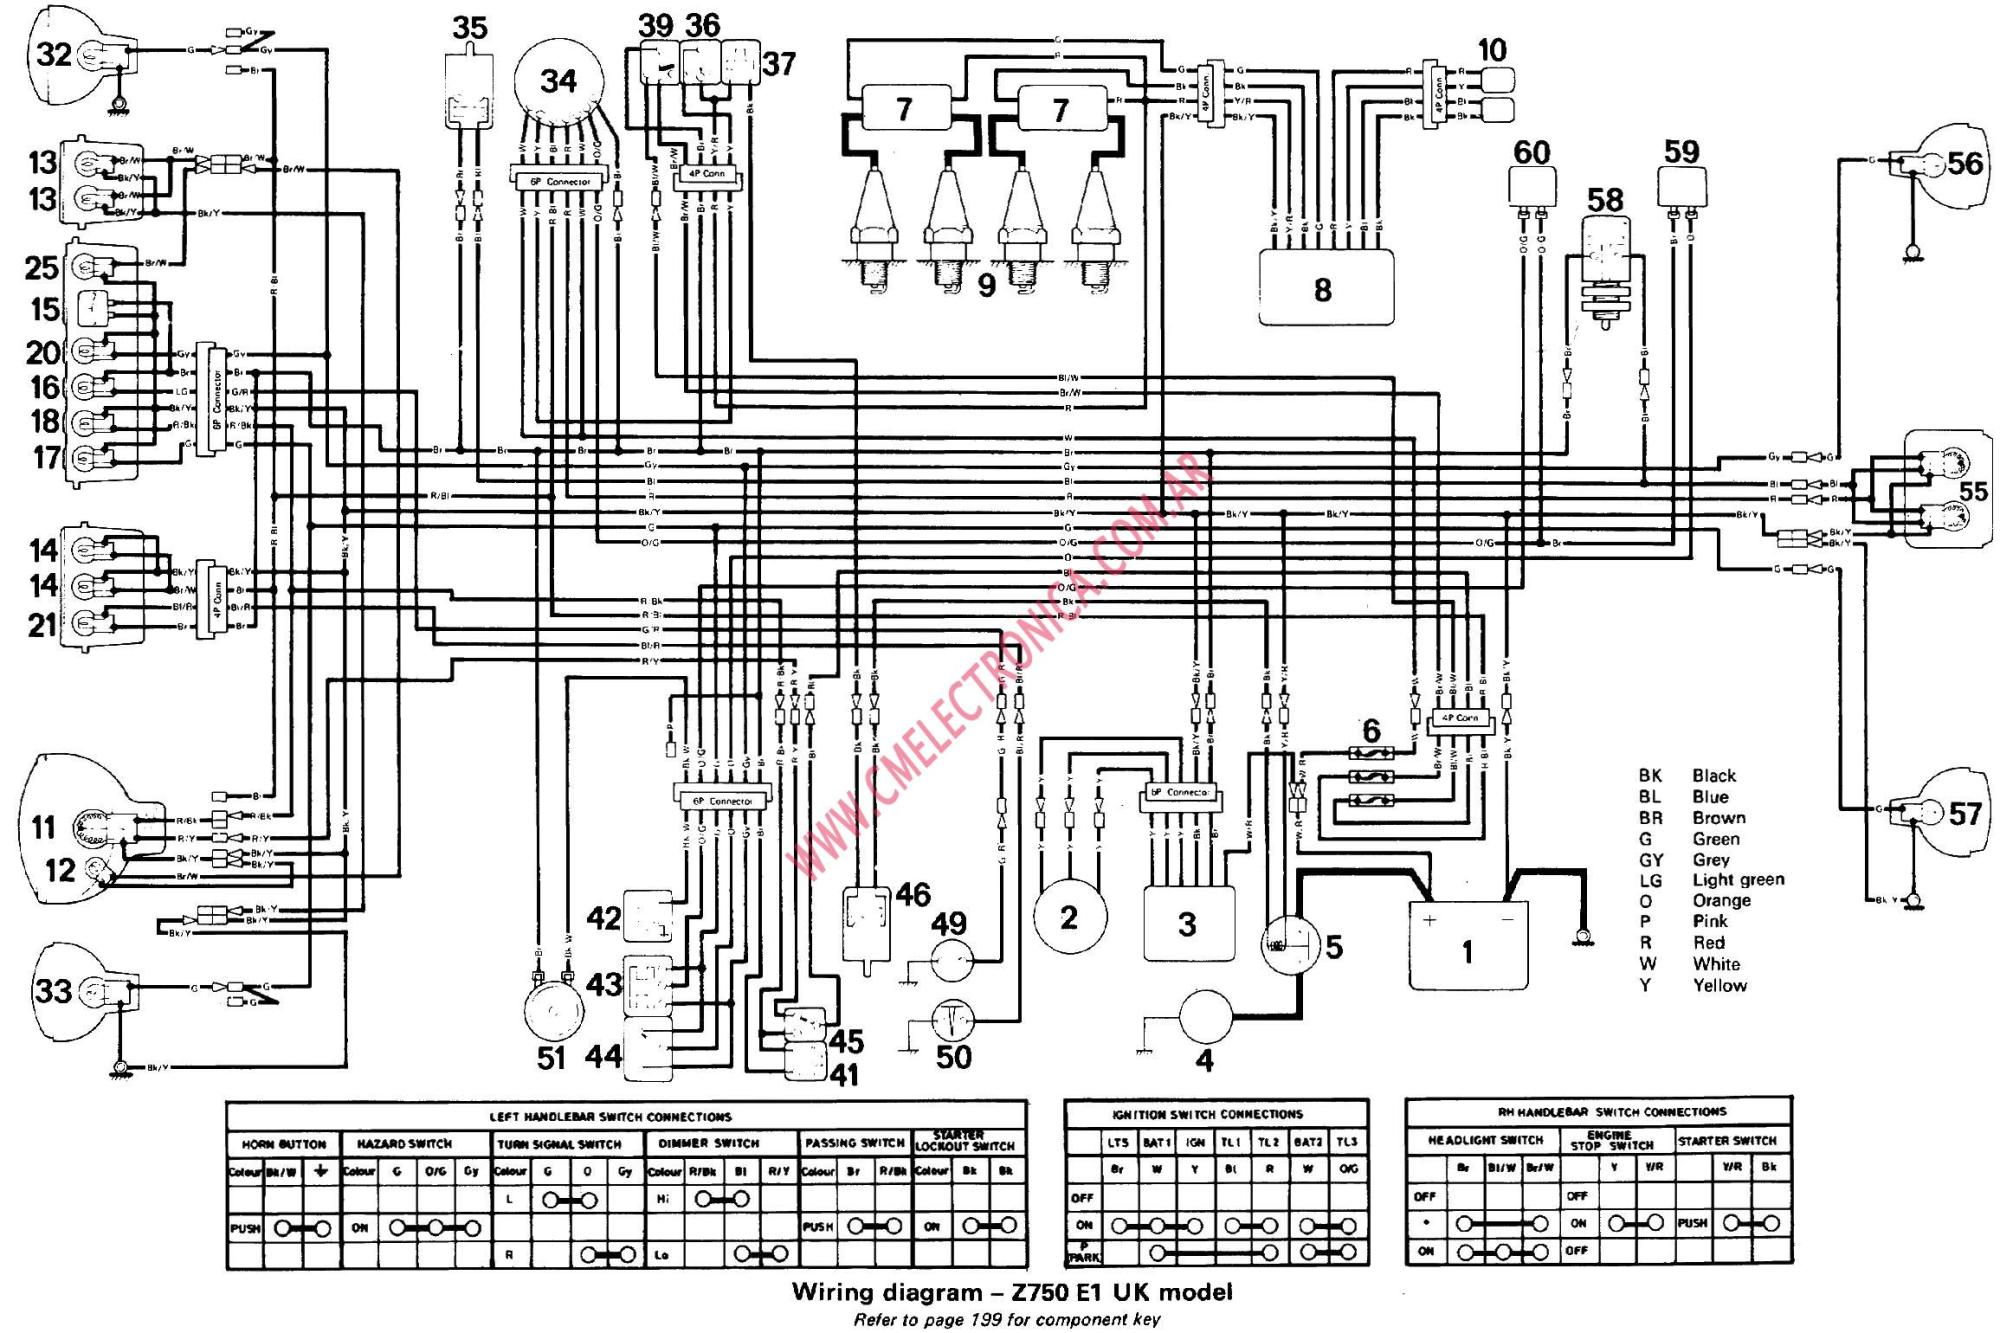 hight resolution of kawasaki z 750 wiring diagram wiring diagram user kawasaki 750 wiring diagram kawasaki 750 wiring diagram